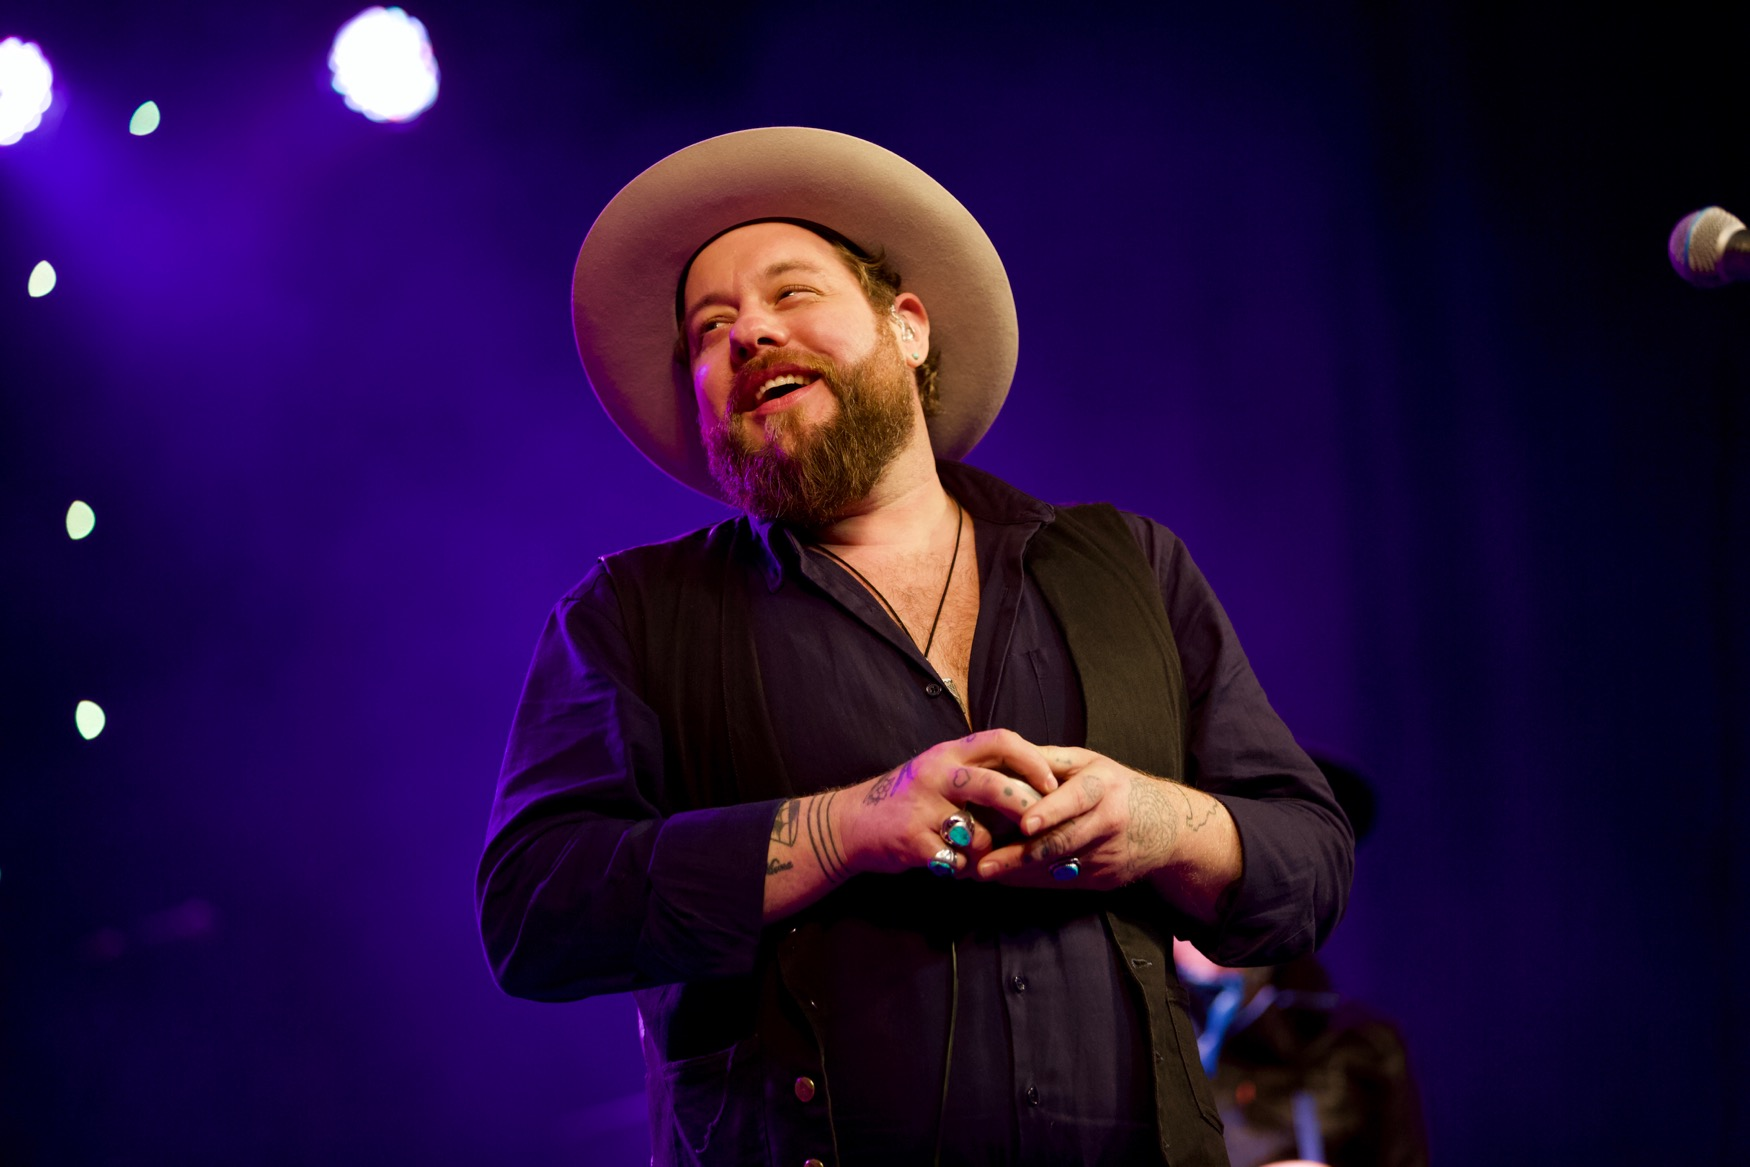 Nathaniel Rateliff @ Luck Reunion 3/15/18. Photo by Derrick K. Lee, Esq. (@Methodman13) for www.BlurredCulture.com.